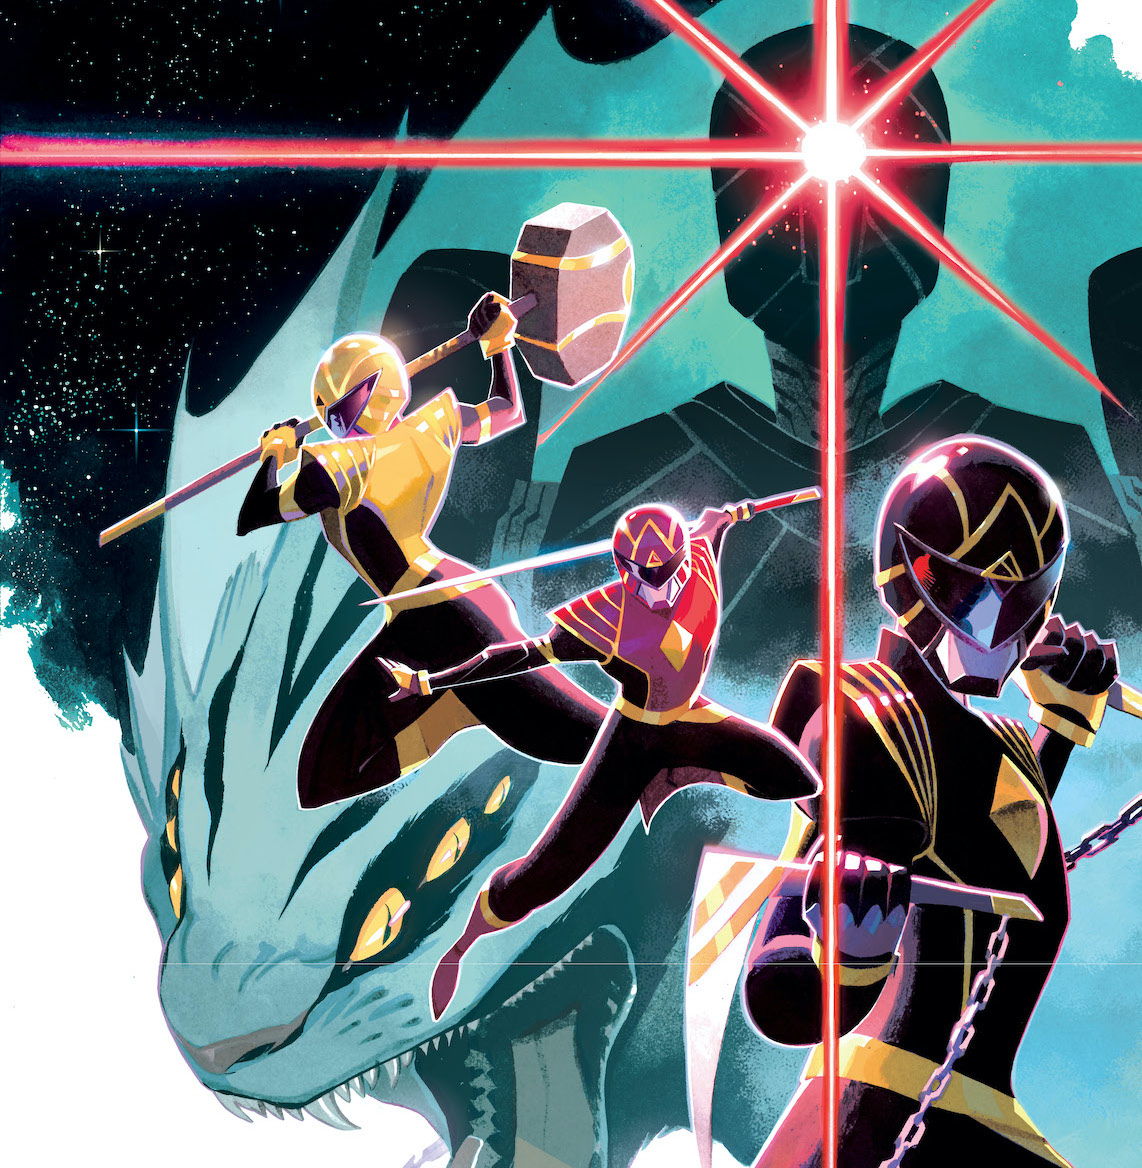 'Power Rangers' #1 review